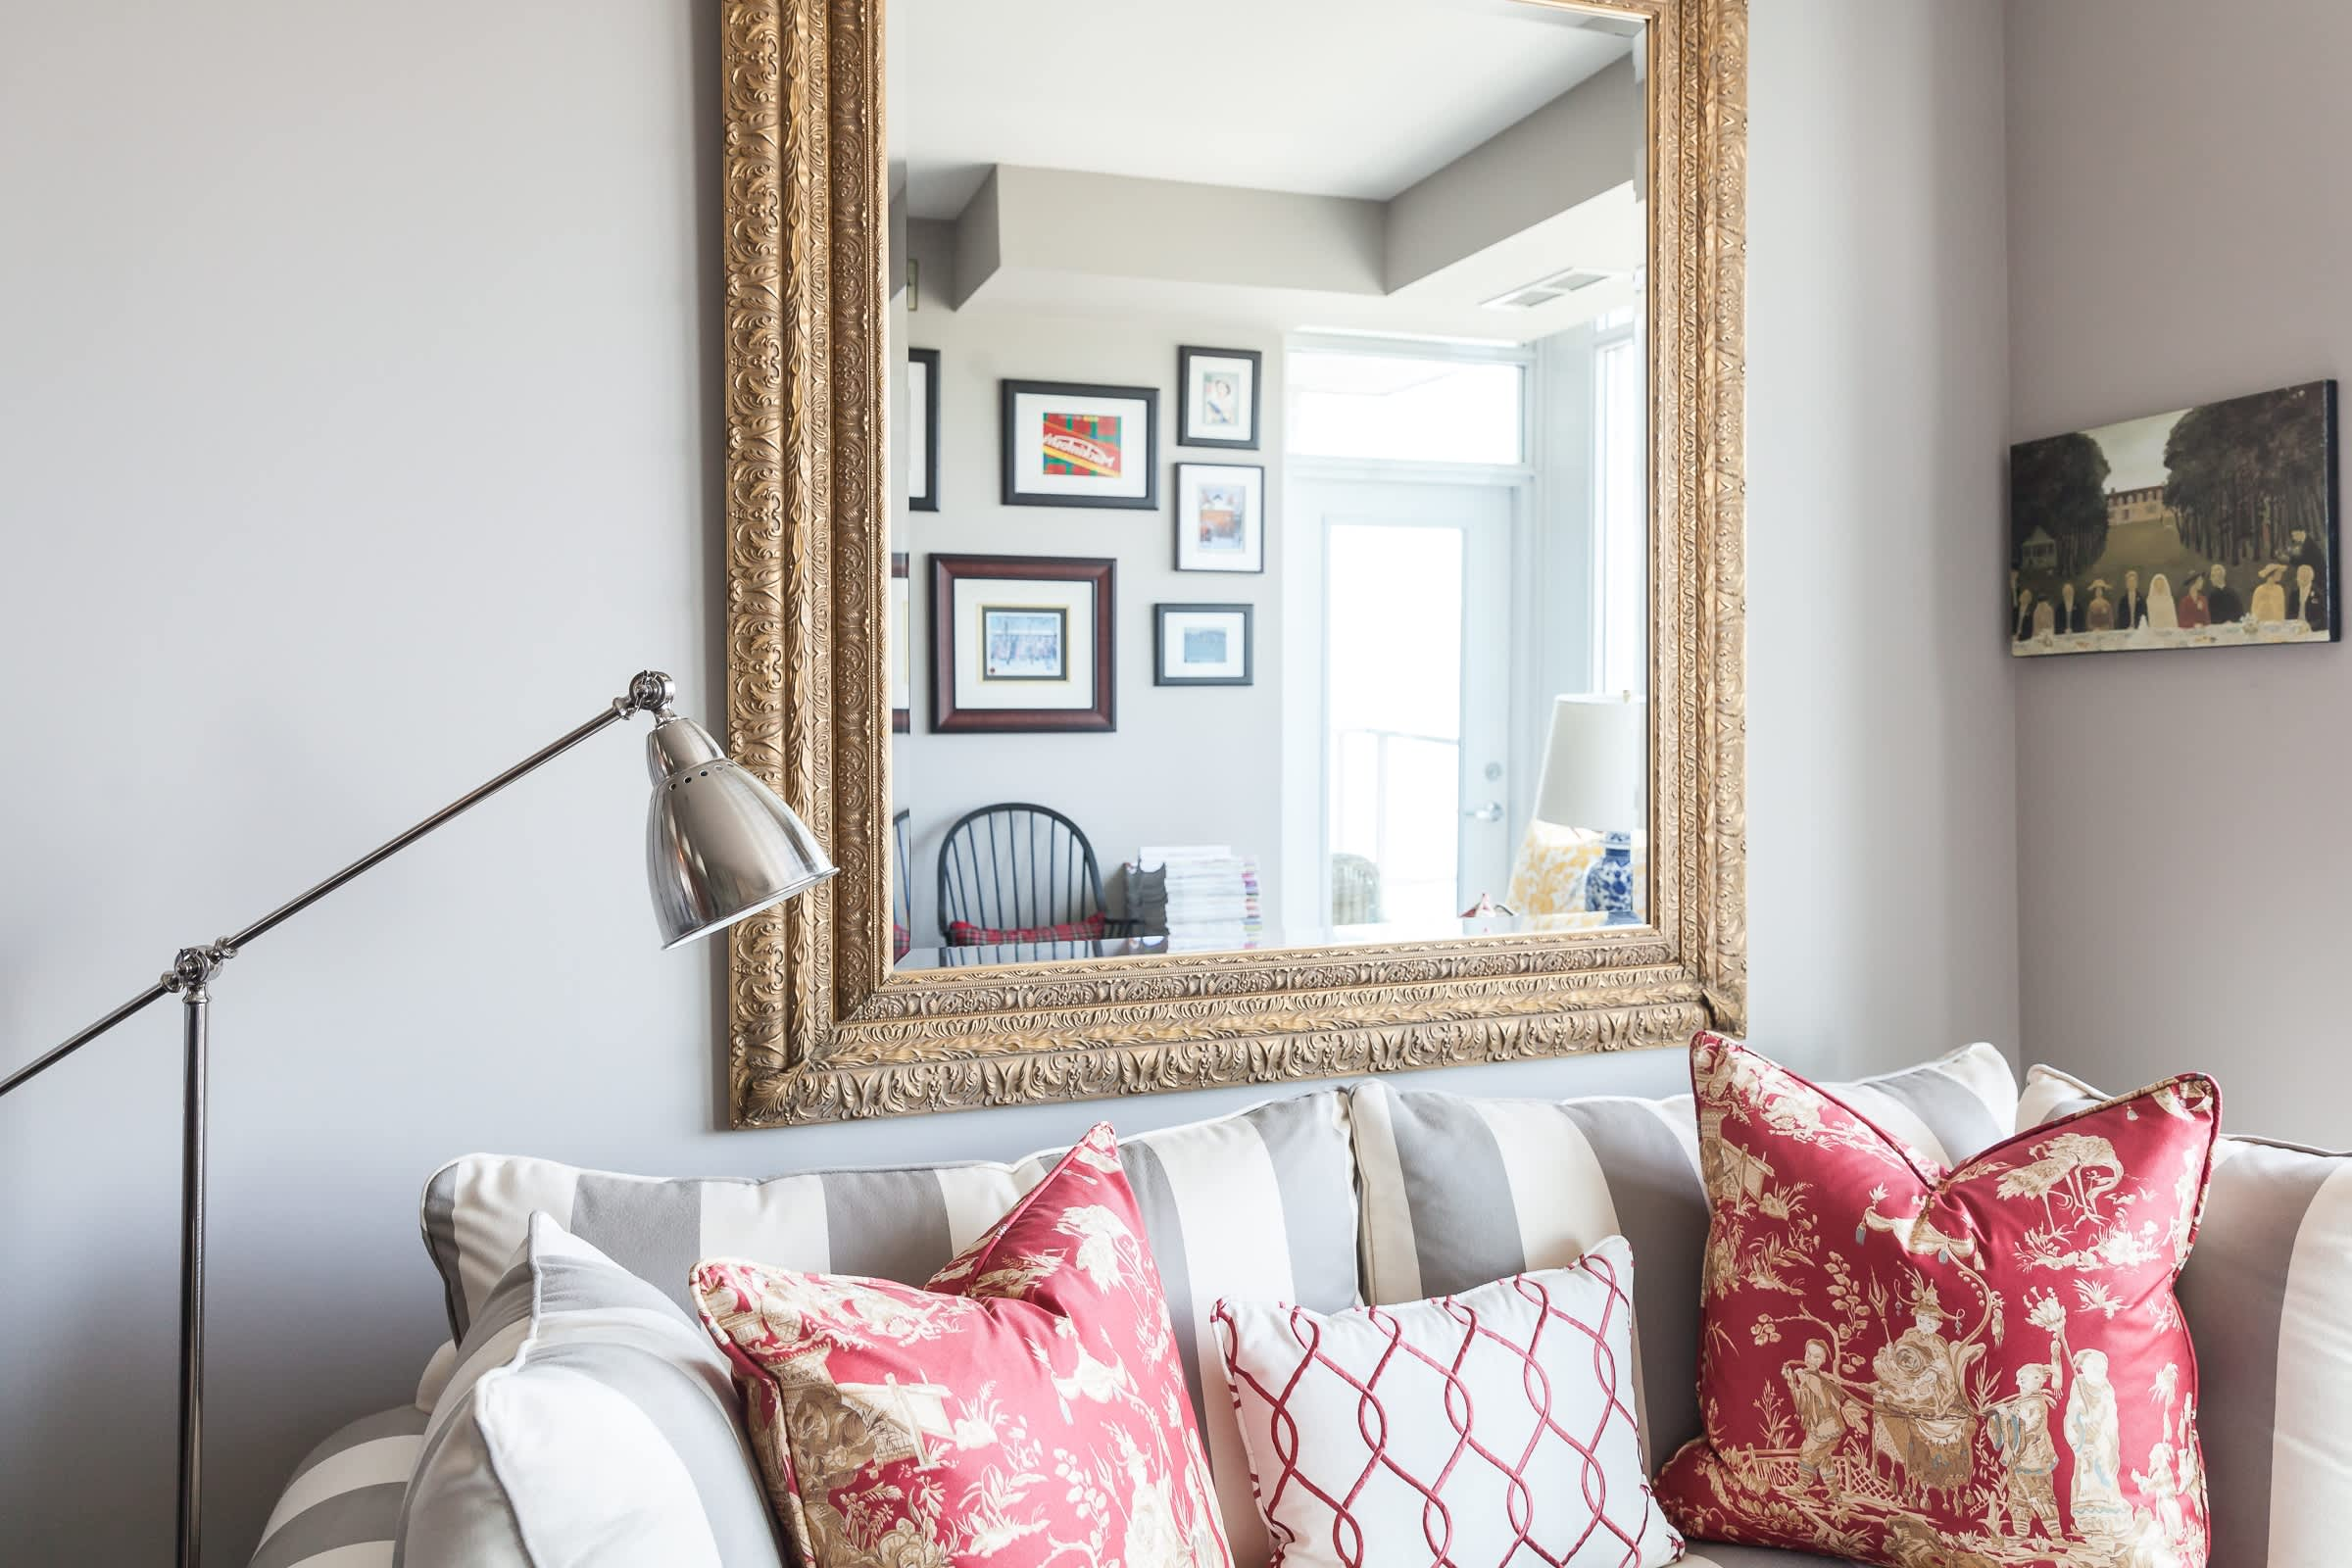 Get the Look: Traditional With a Touch of Whimsy